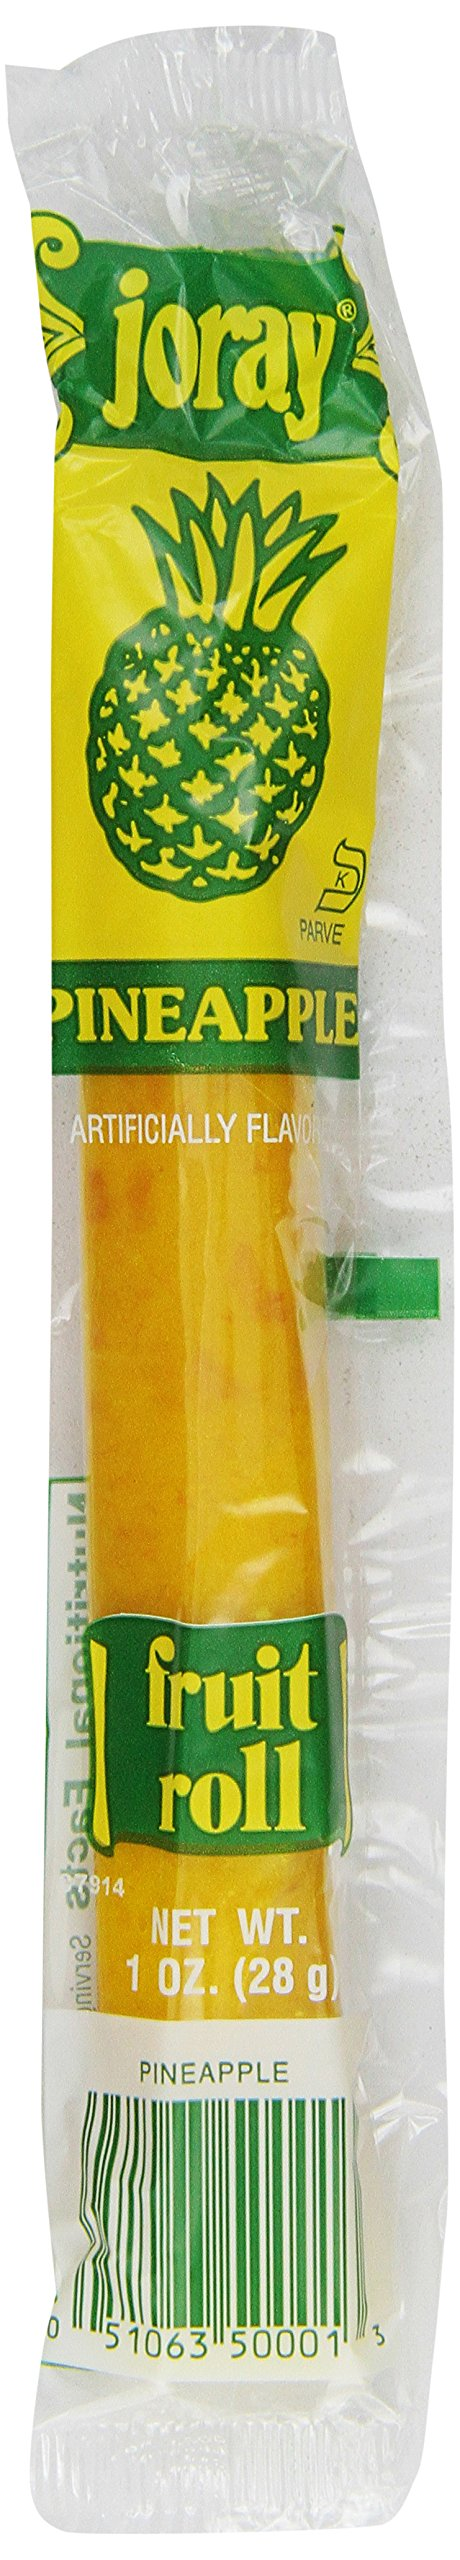 Joray Fruit Roll, Pineapple, 1-Ounce Units (Pack of 48)